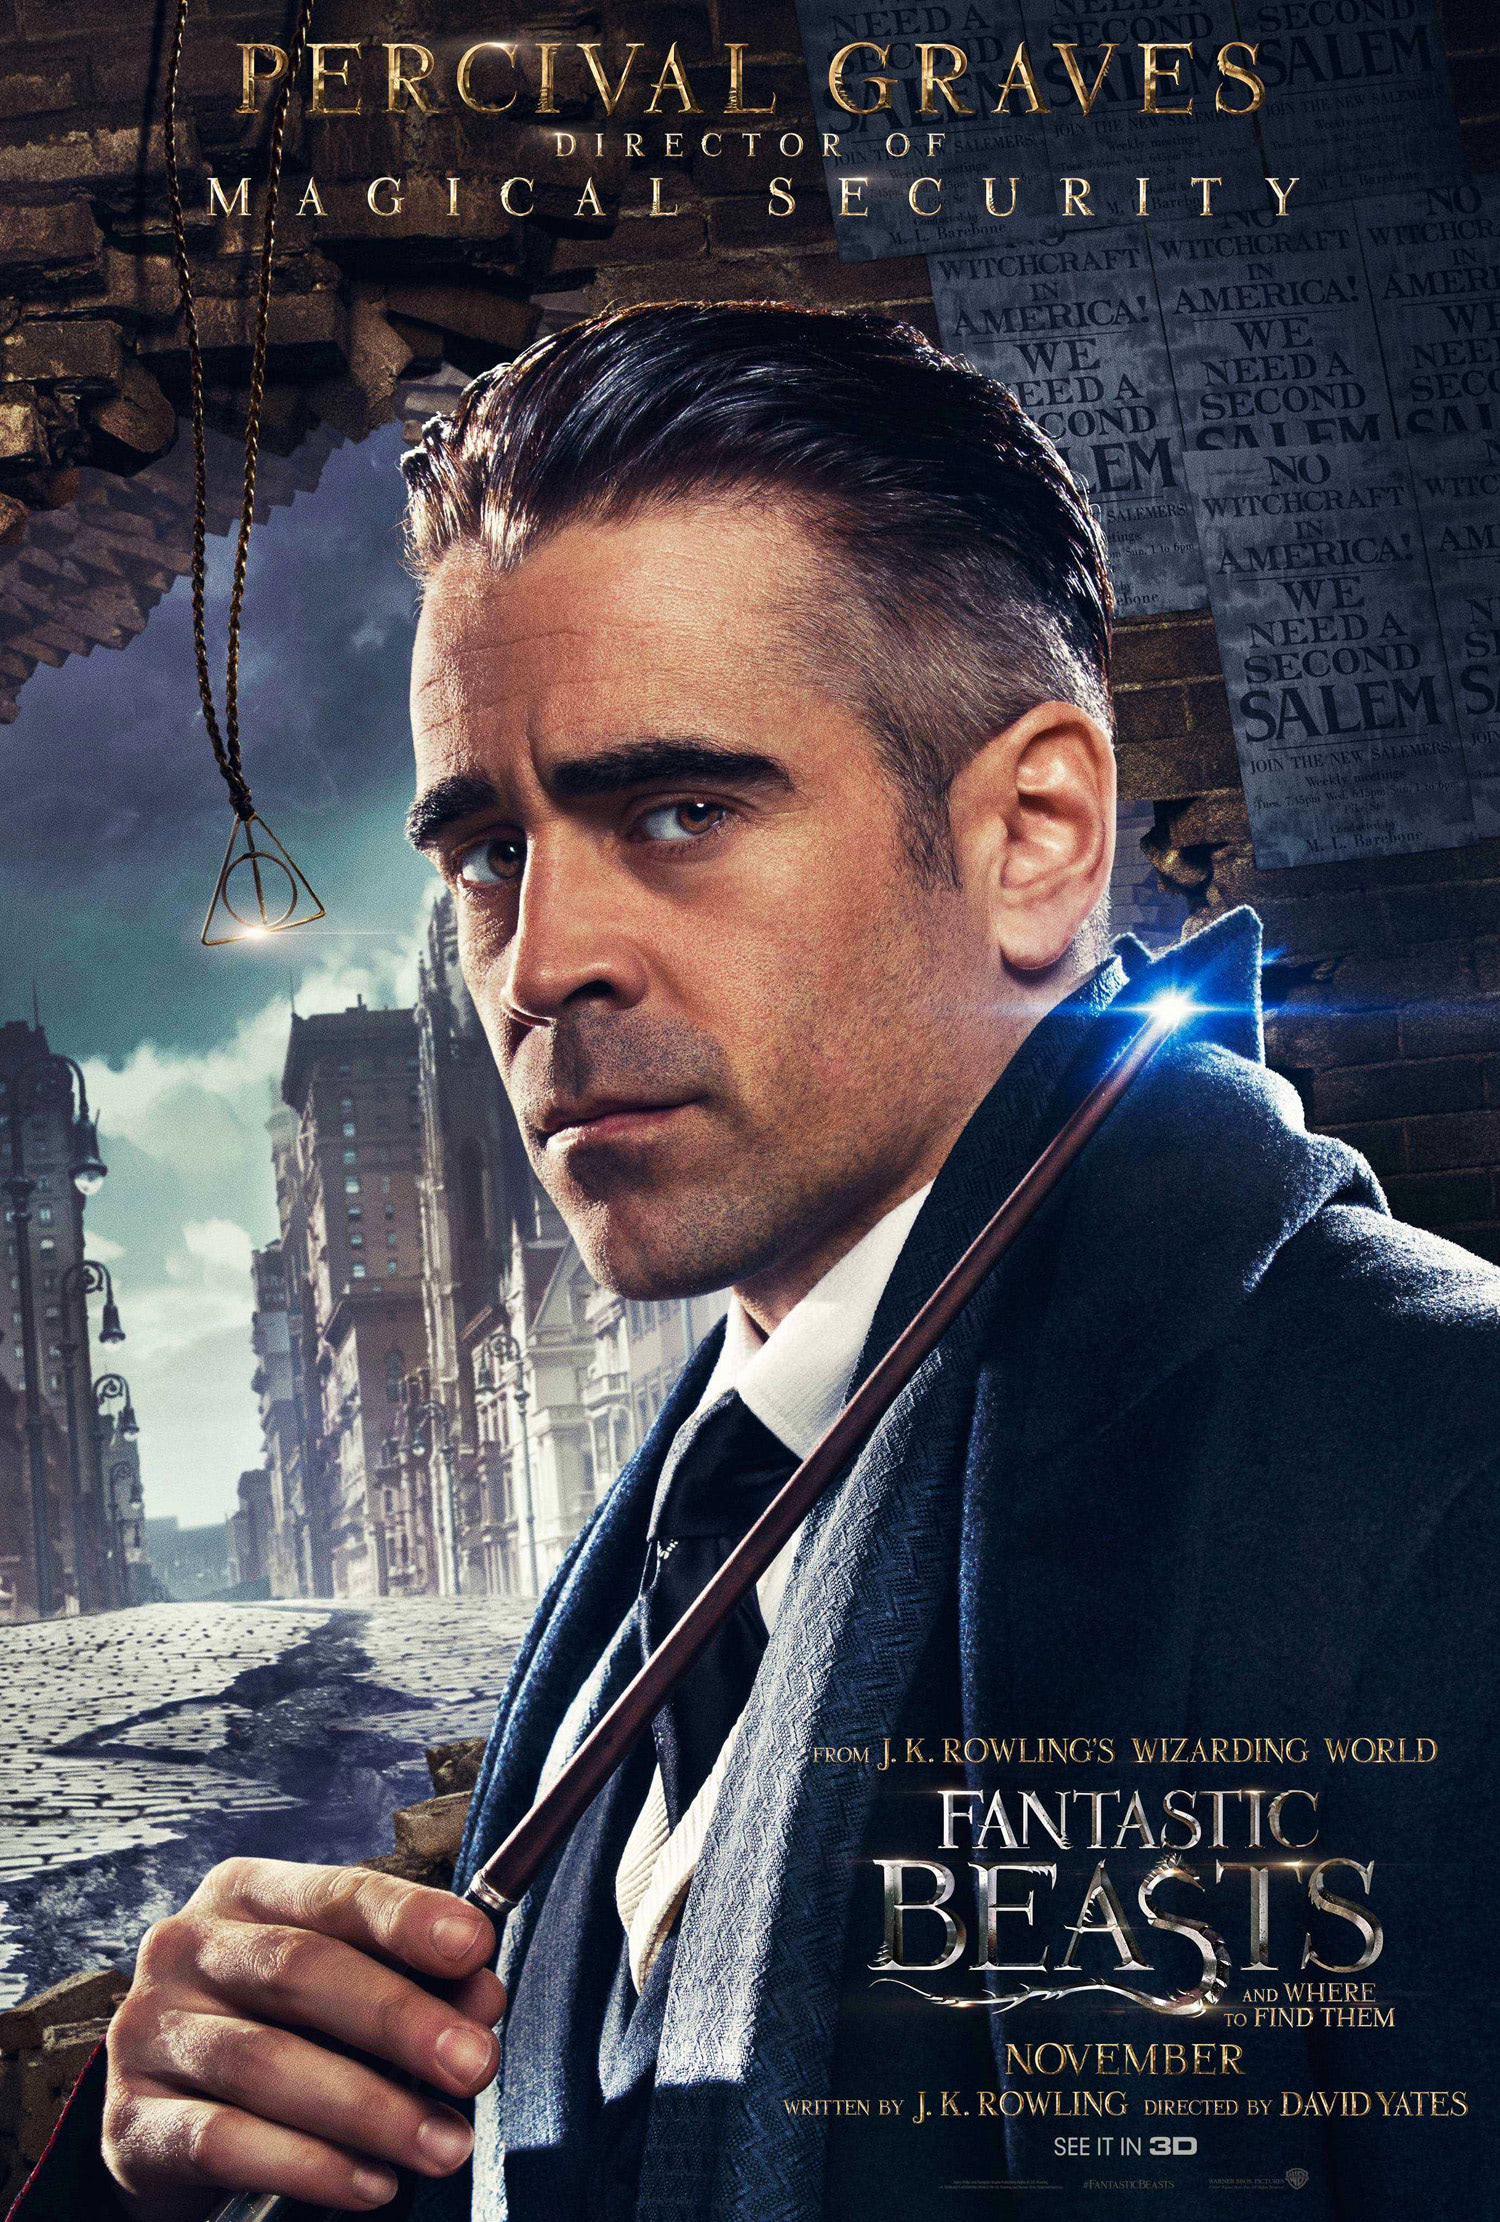 'Fantastic Beasts and Where to Find Them' Graves poster